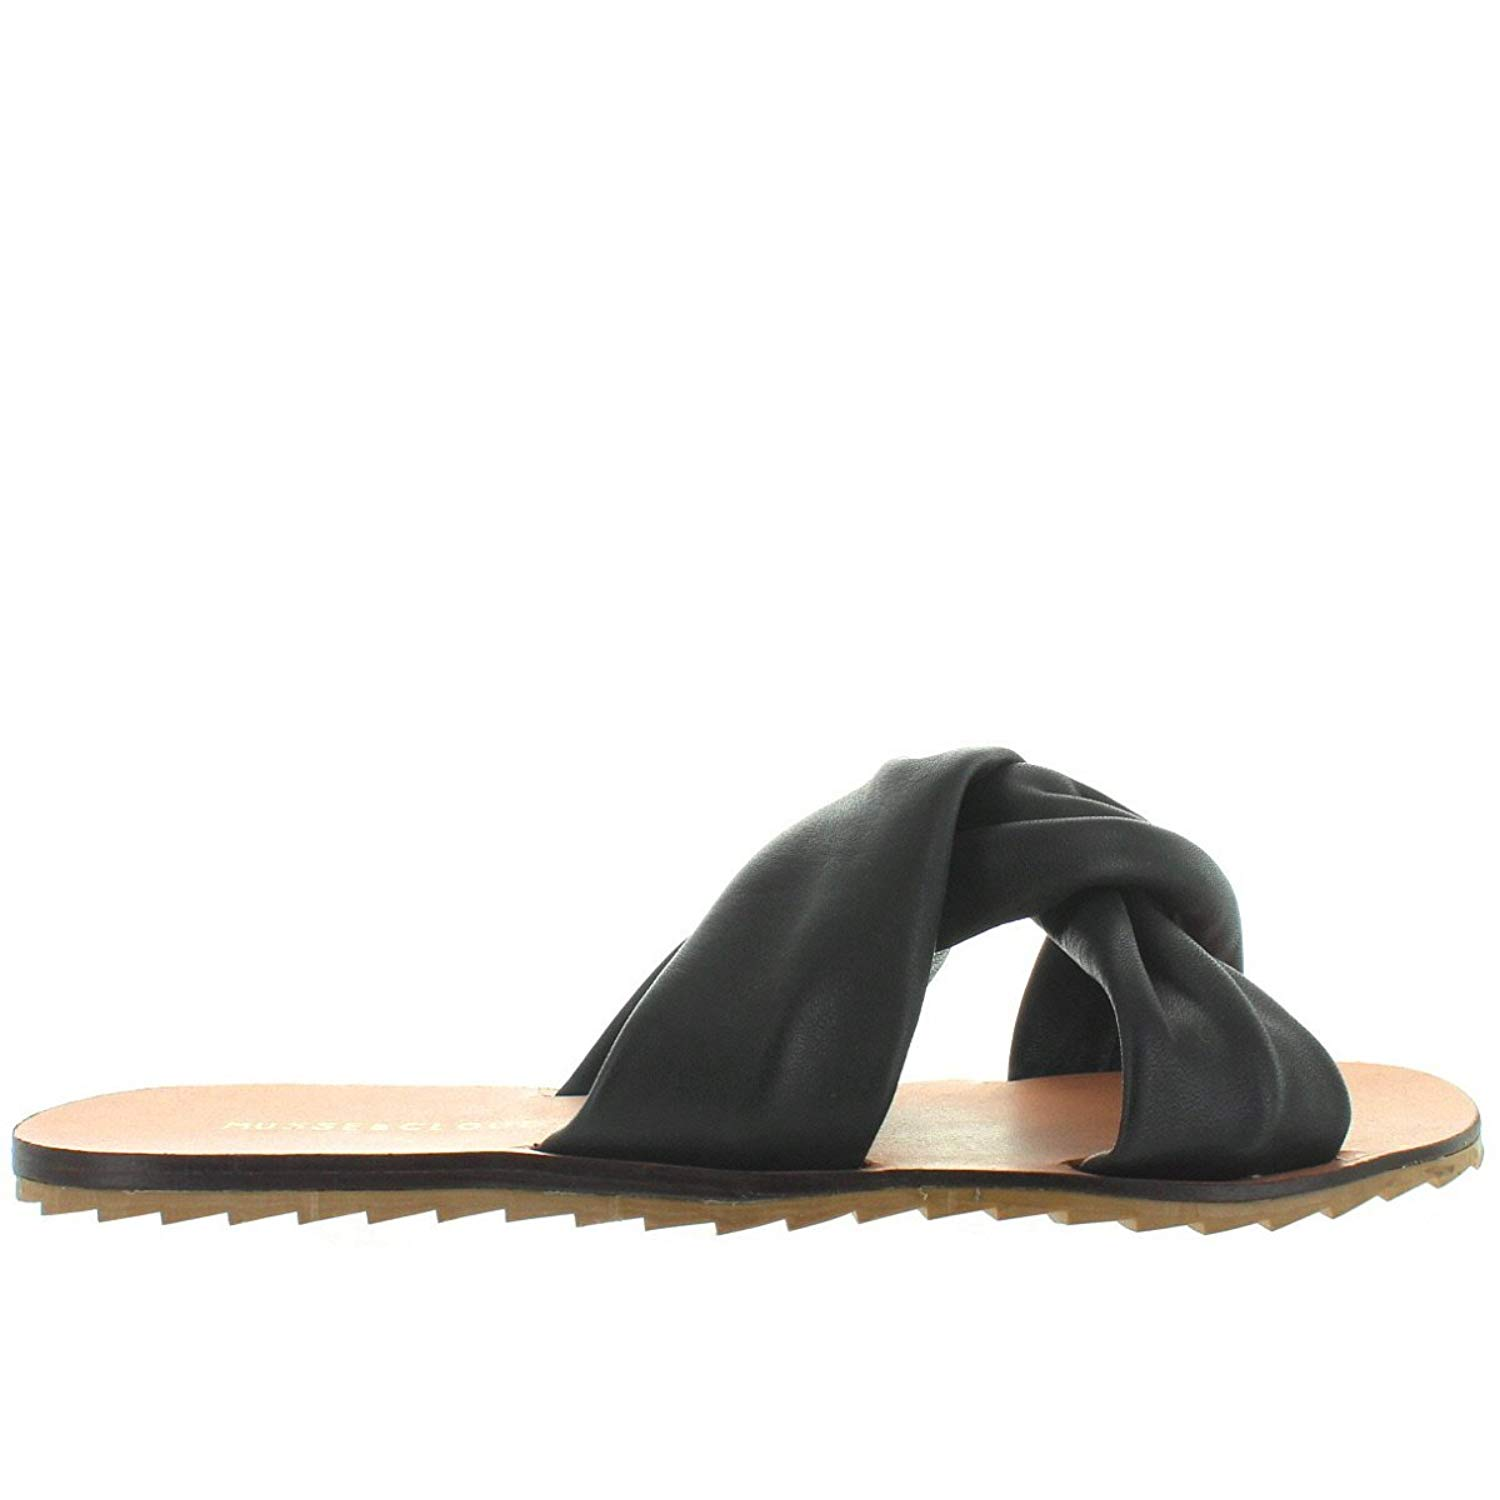 78402746320 Details about Musse   Cloud Valentine - Black Twist Knot Flat Slide Sandal